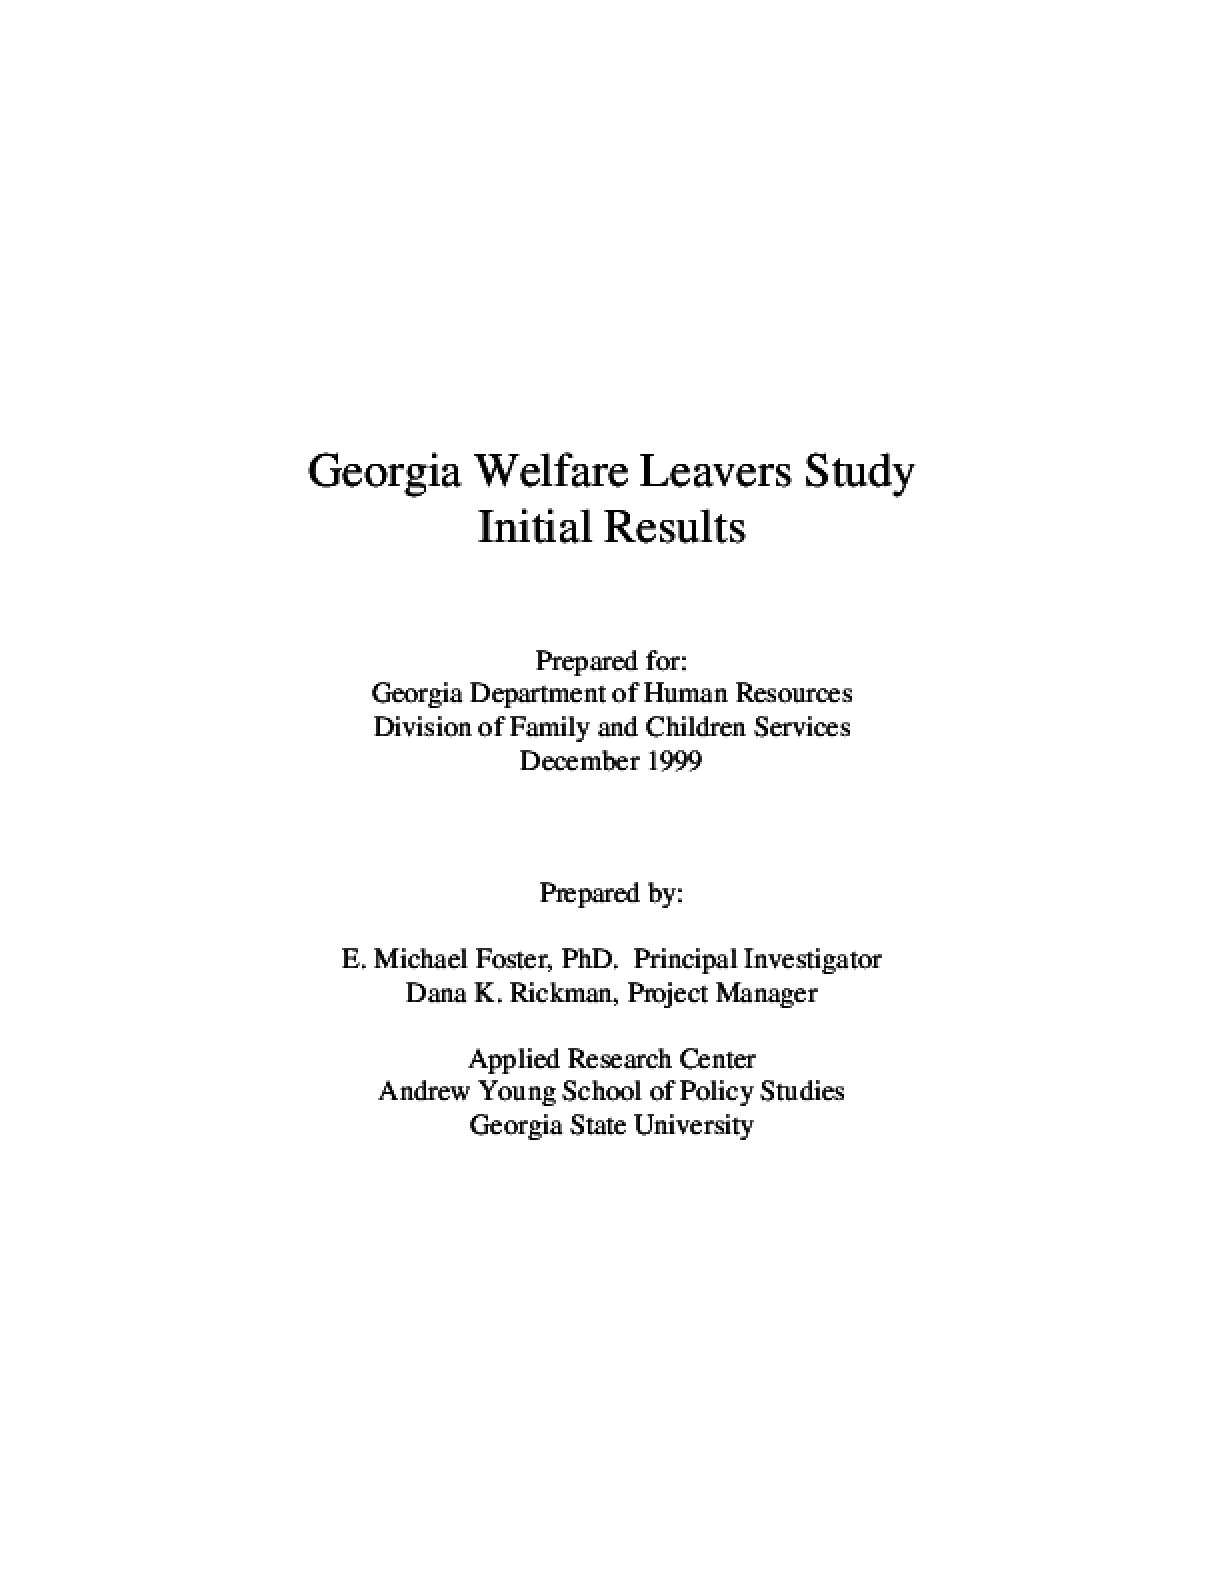 Georgia Welfare Leavers Study - Initial Results